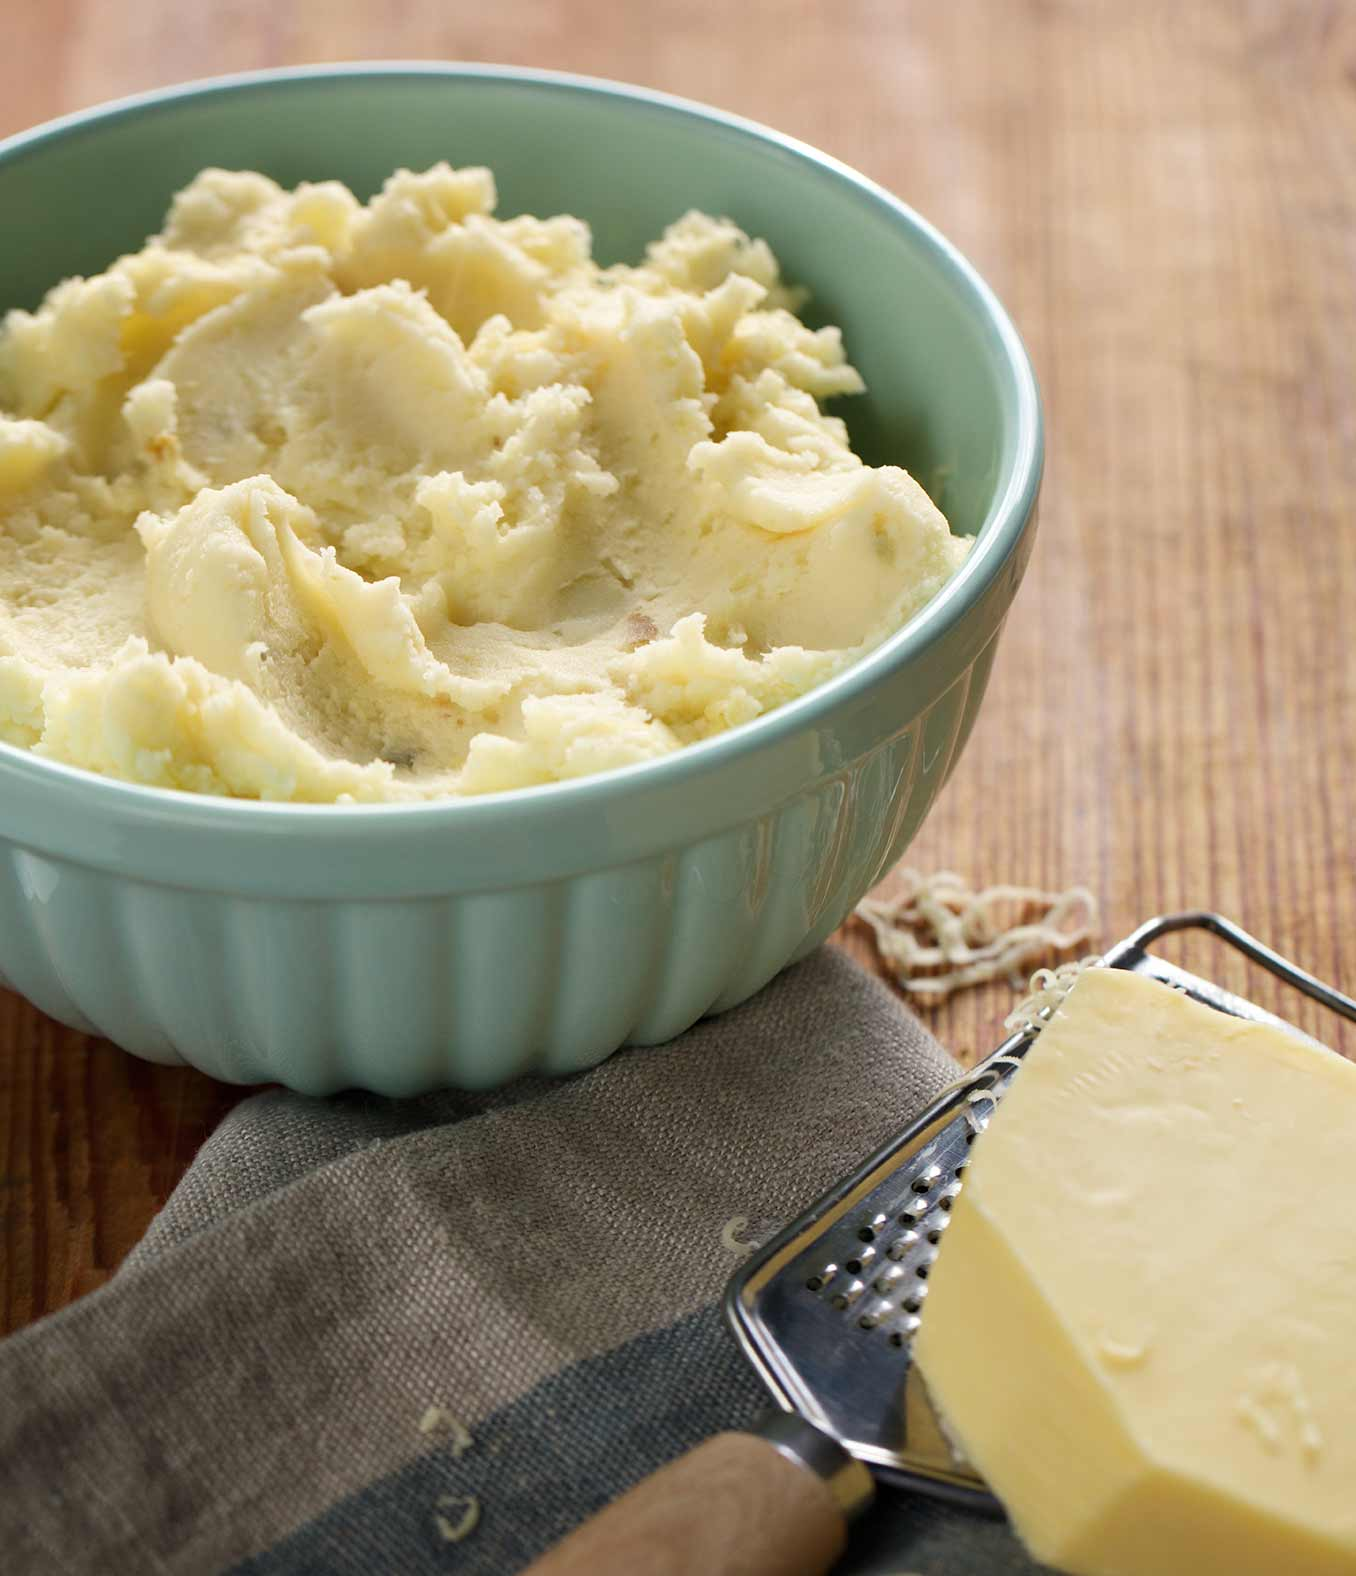 Raw Cheddar and Garlic Mashed Potatoes